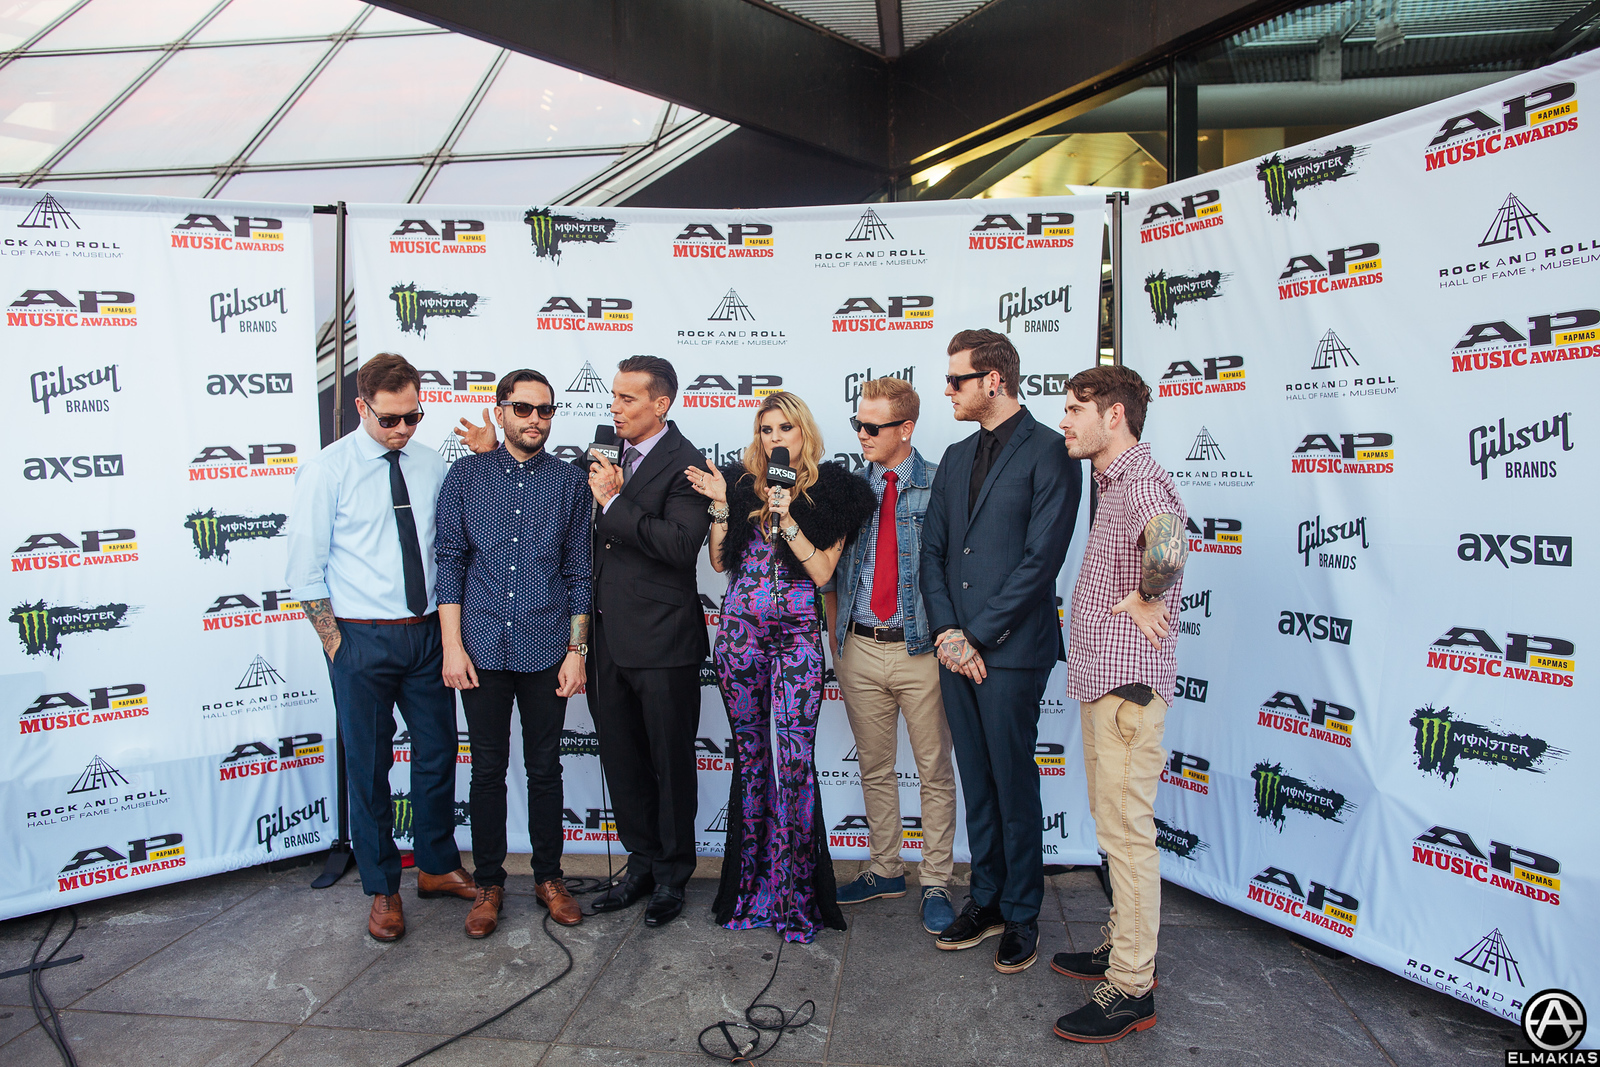 CM Punk and Juliet Simms interviewing A Day To Remember